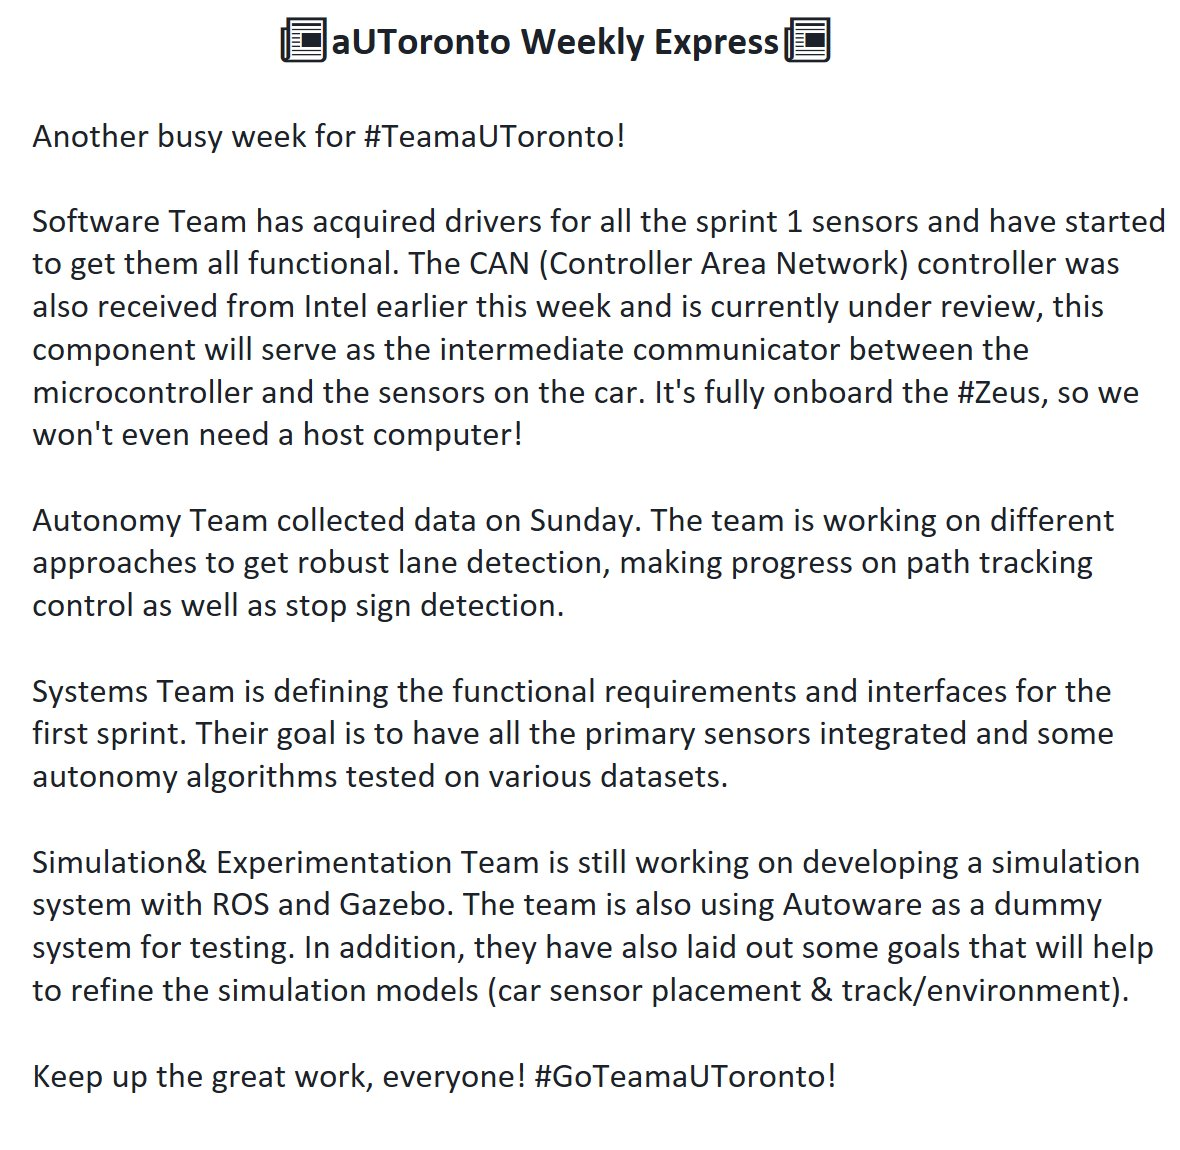 aUTorontoweeklyexpress hashtag on Twitter